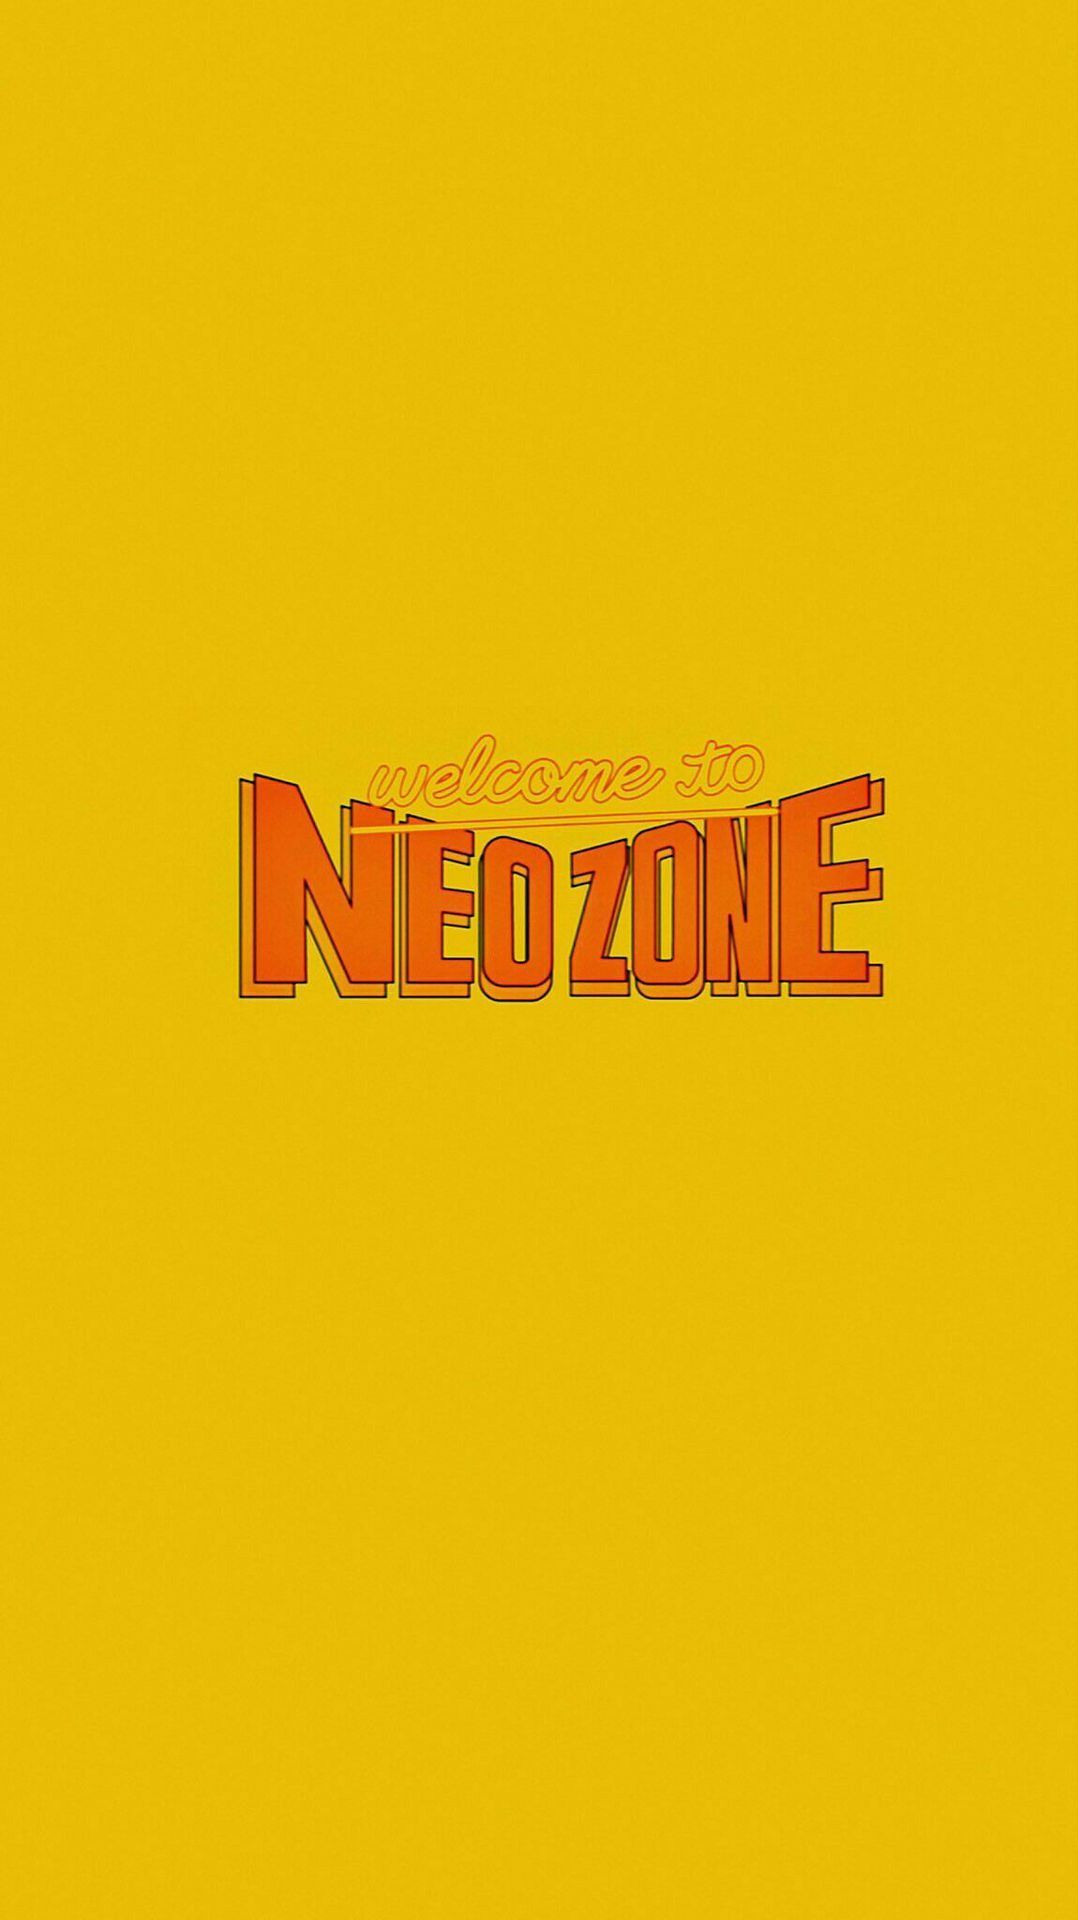 Nct Wallpaper Neo Zone Text In 2020 Nct Logo Nct Kpop Iphone Wallpaper